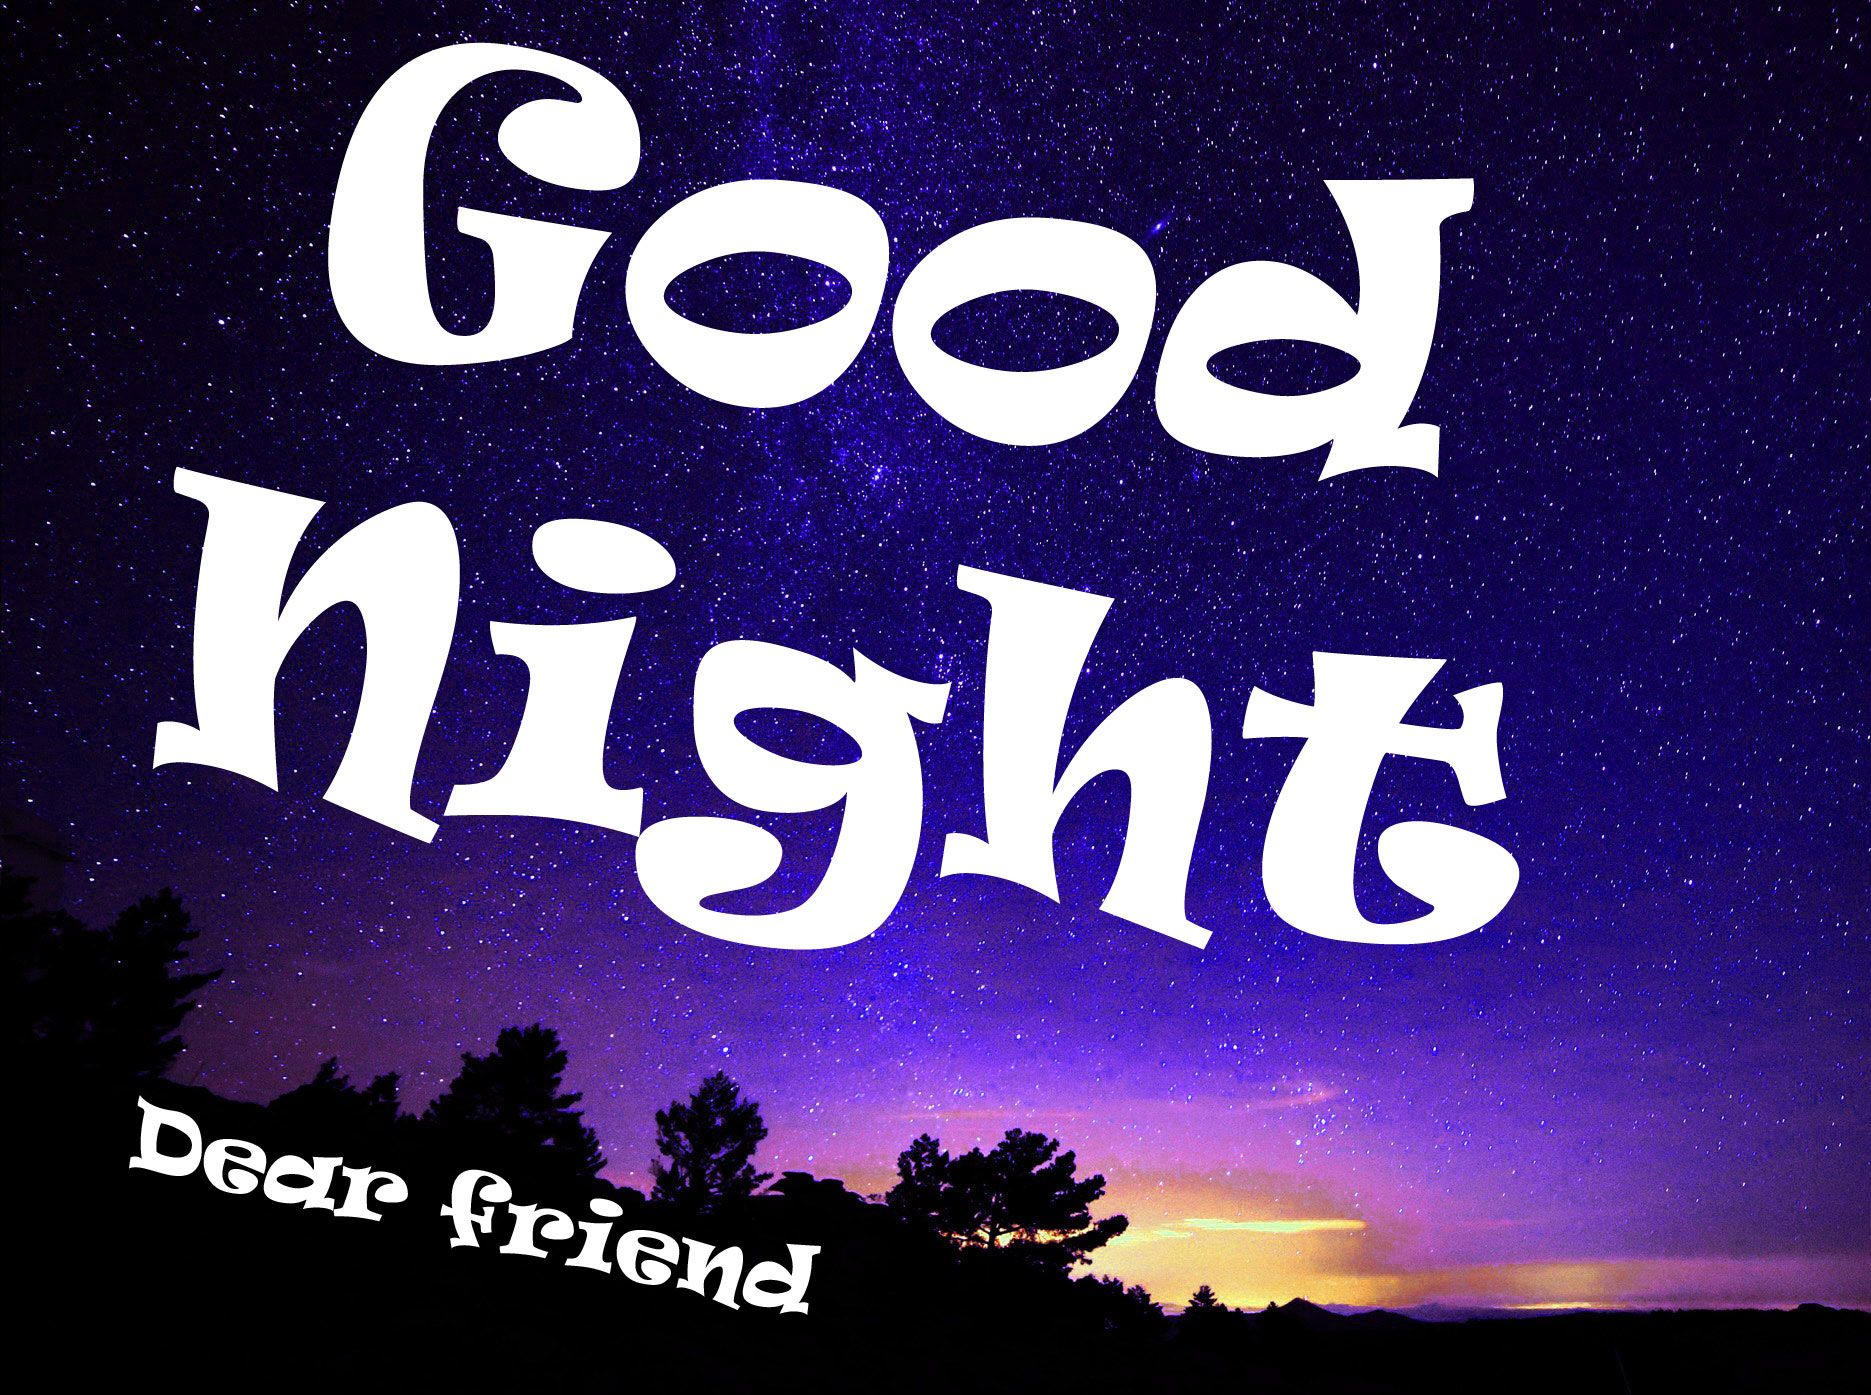 Good Night 1604905204 Funny Good Night Images Good Night Messages Good Night Friends